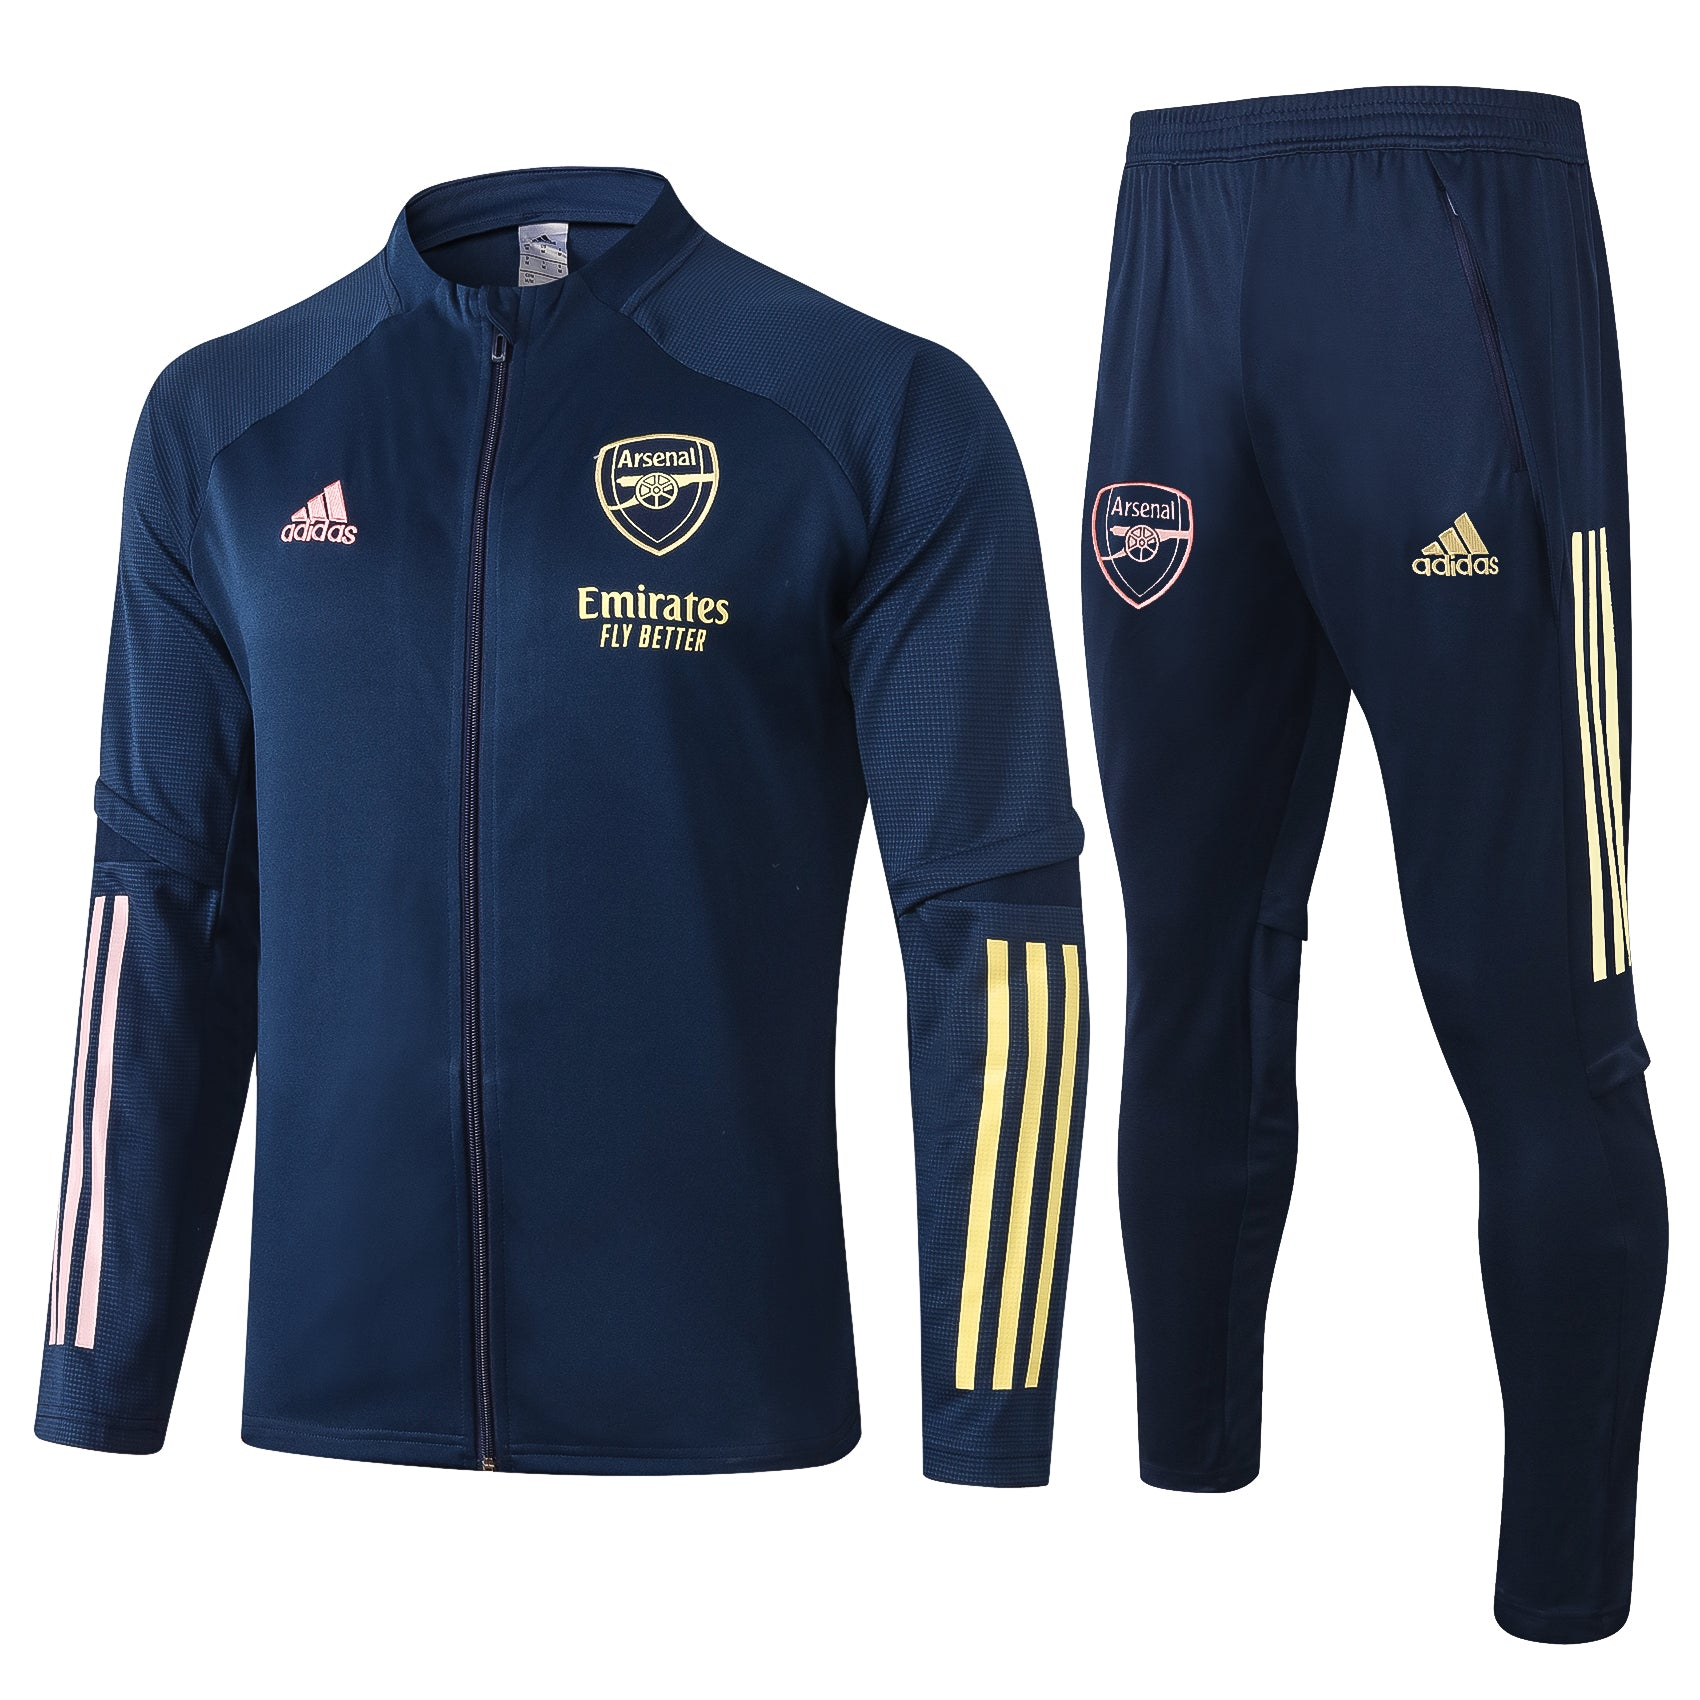 Arsenal 2020 Navy Blue Training Jacket Tracksuit Set Sudadera De Entre Futgol Store